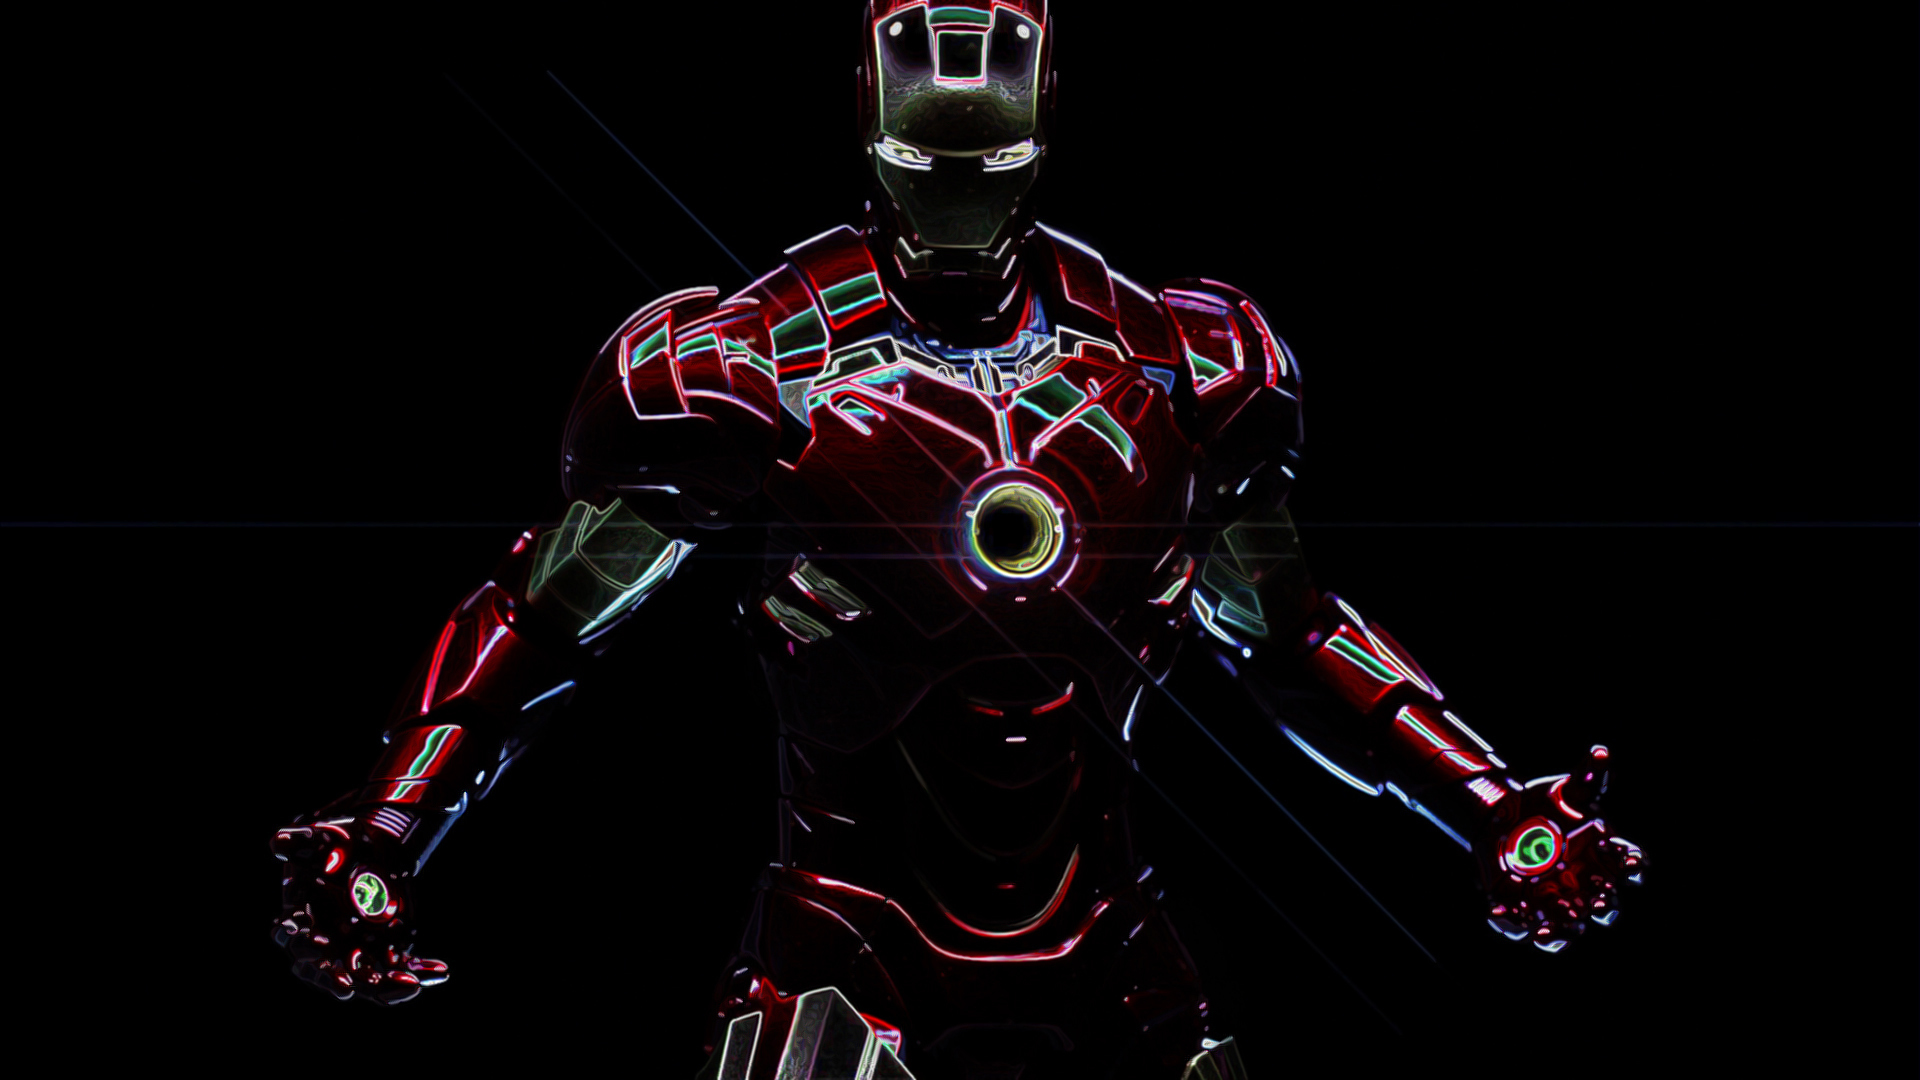 New 3d Wallpapers Free Download For Mobile Iron Man Wallpapers Hd Free Download Pixelstalk Net